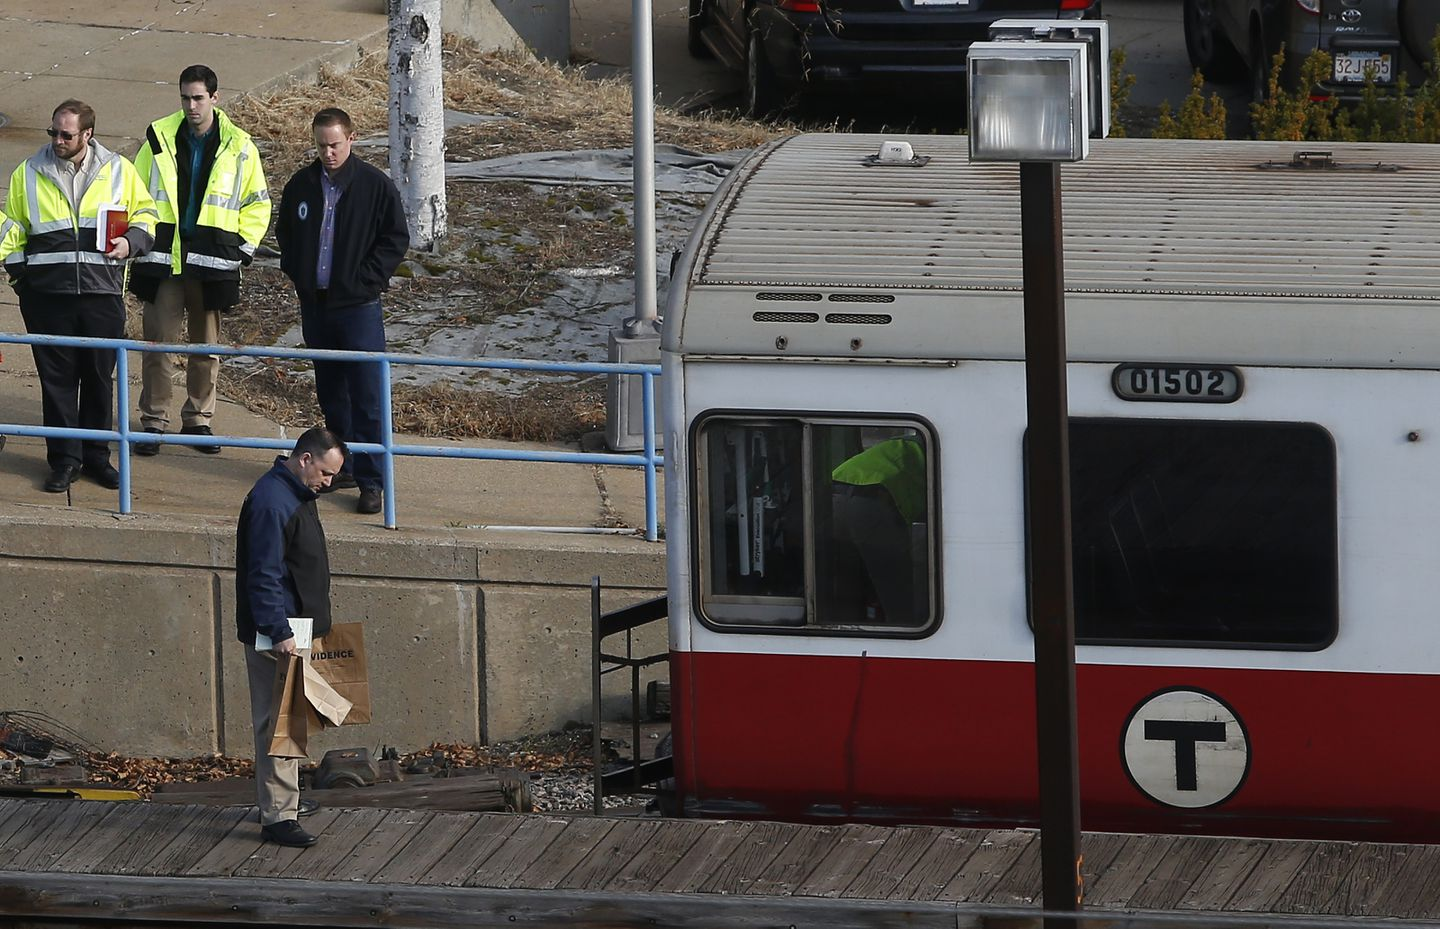 Mbta Points To Two Earlier Cases Of Throttle Tampering The Boston Globe